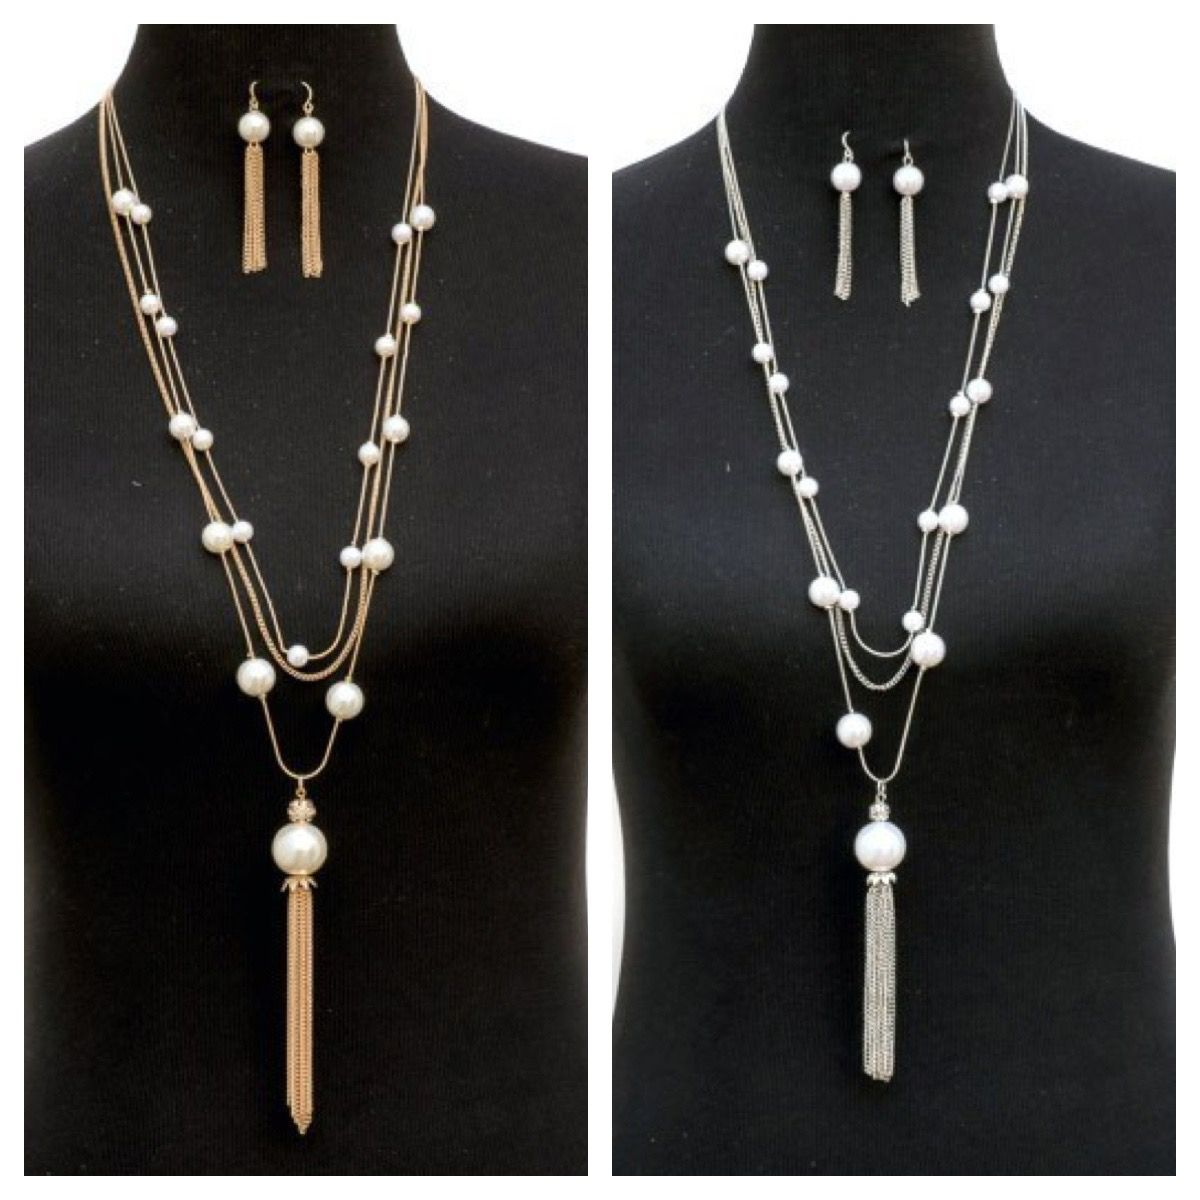 Check out our beautiful three strand pearl necklace and earring set available in silver or gold combo, $36.00 free US shipping, you can get 10% off with code HOL10 right now before they sell out  http://bit.ly/1PkD1K0